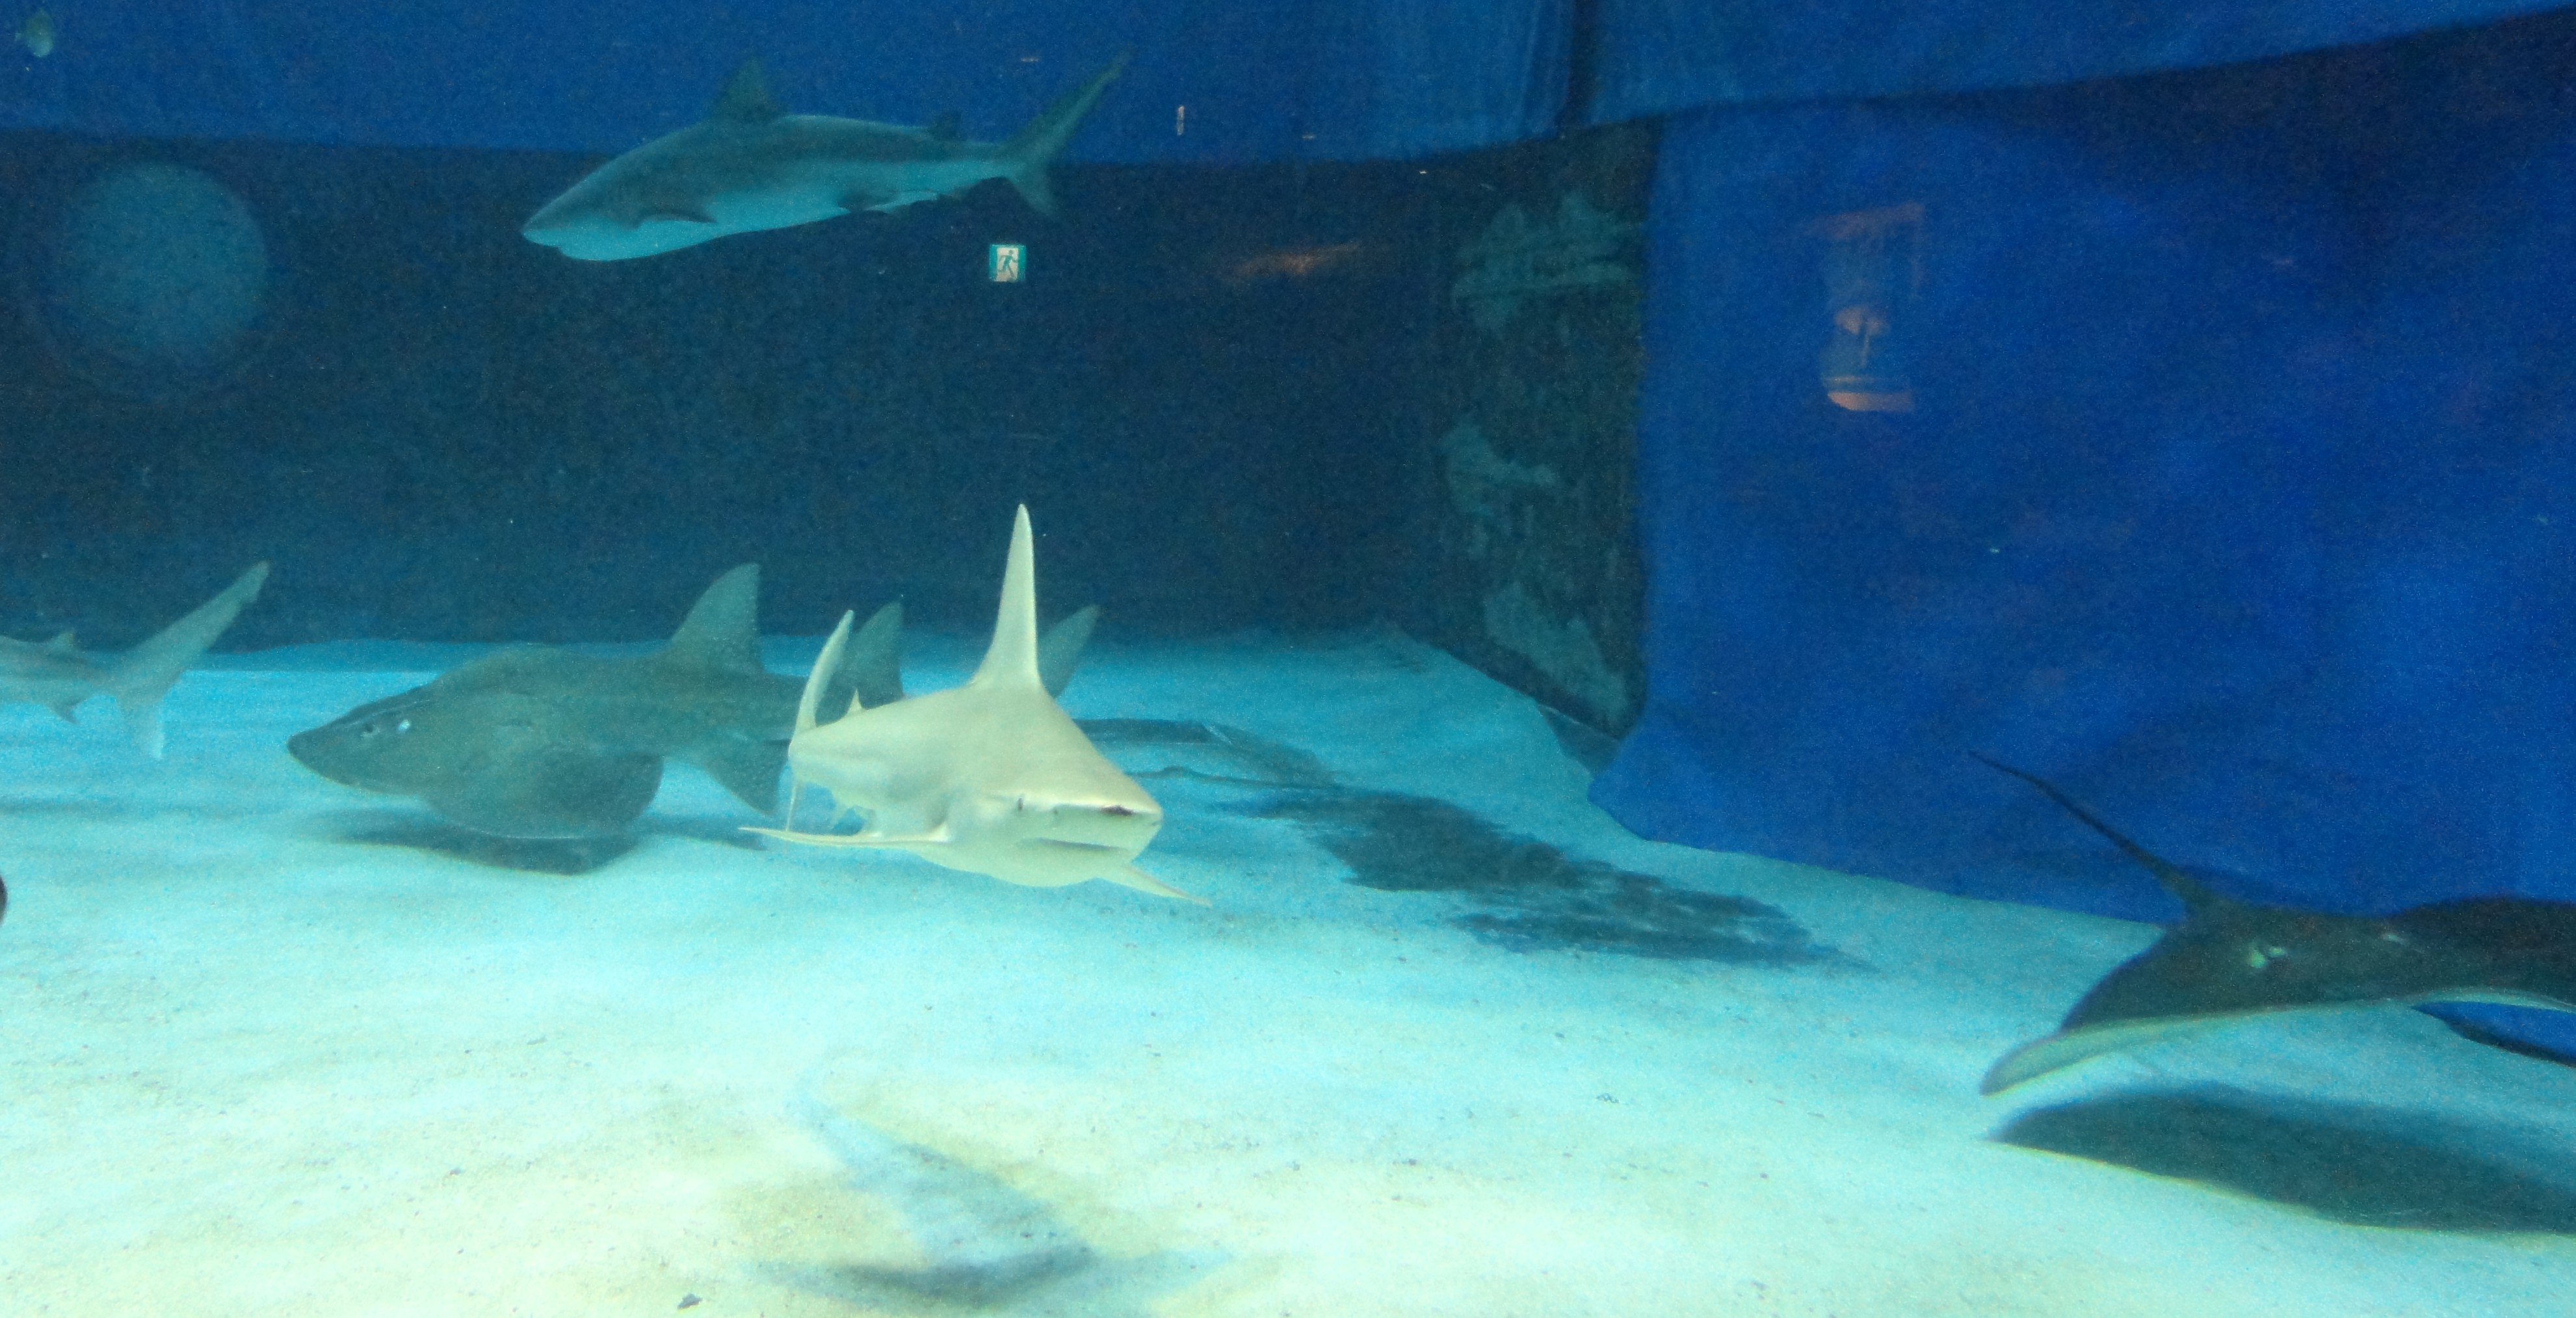 A guitarfish with three sharks (one only a tail), a typical ray, and a menacing black hulk).